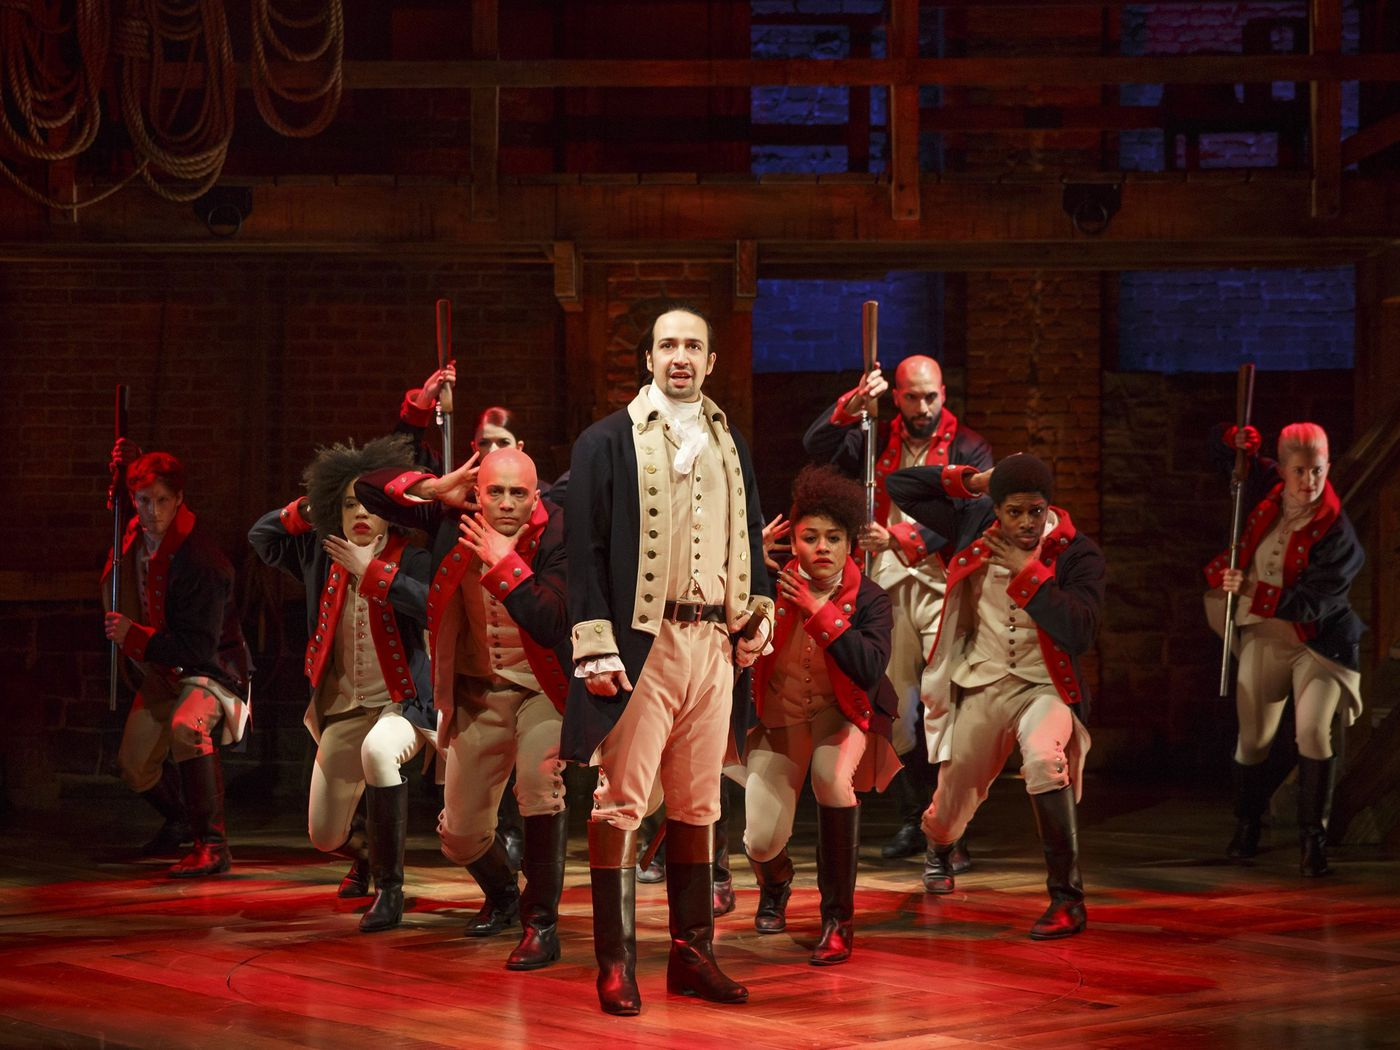 7 musicals to listen to if you like Hamilton - Vox